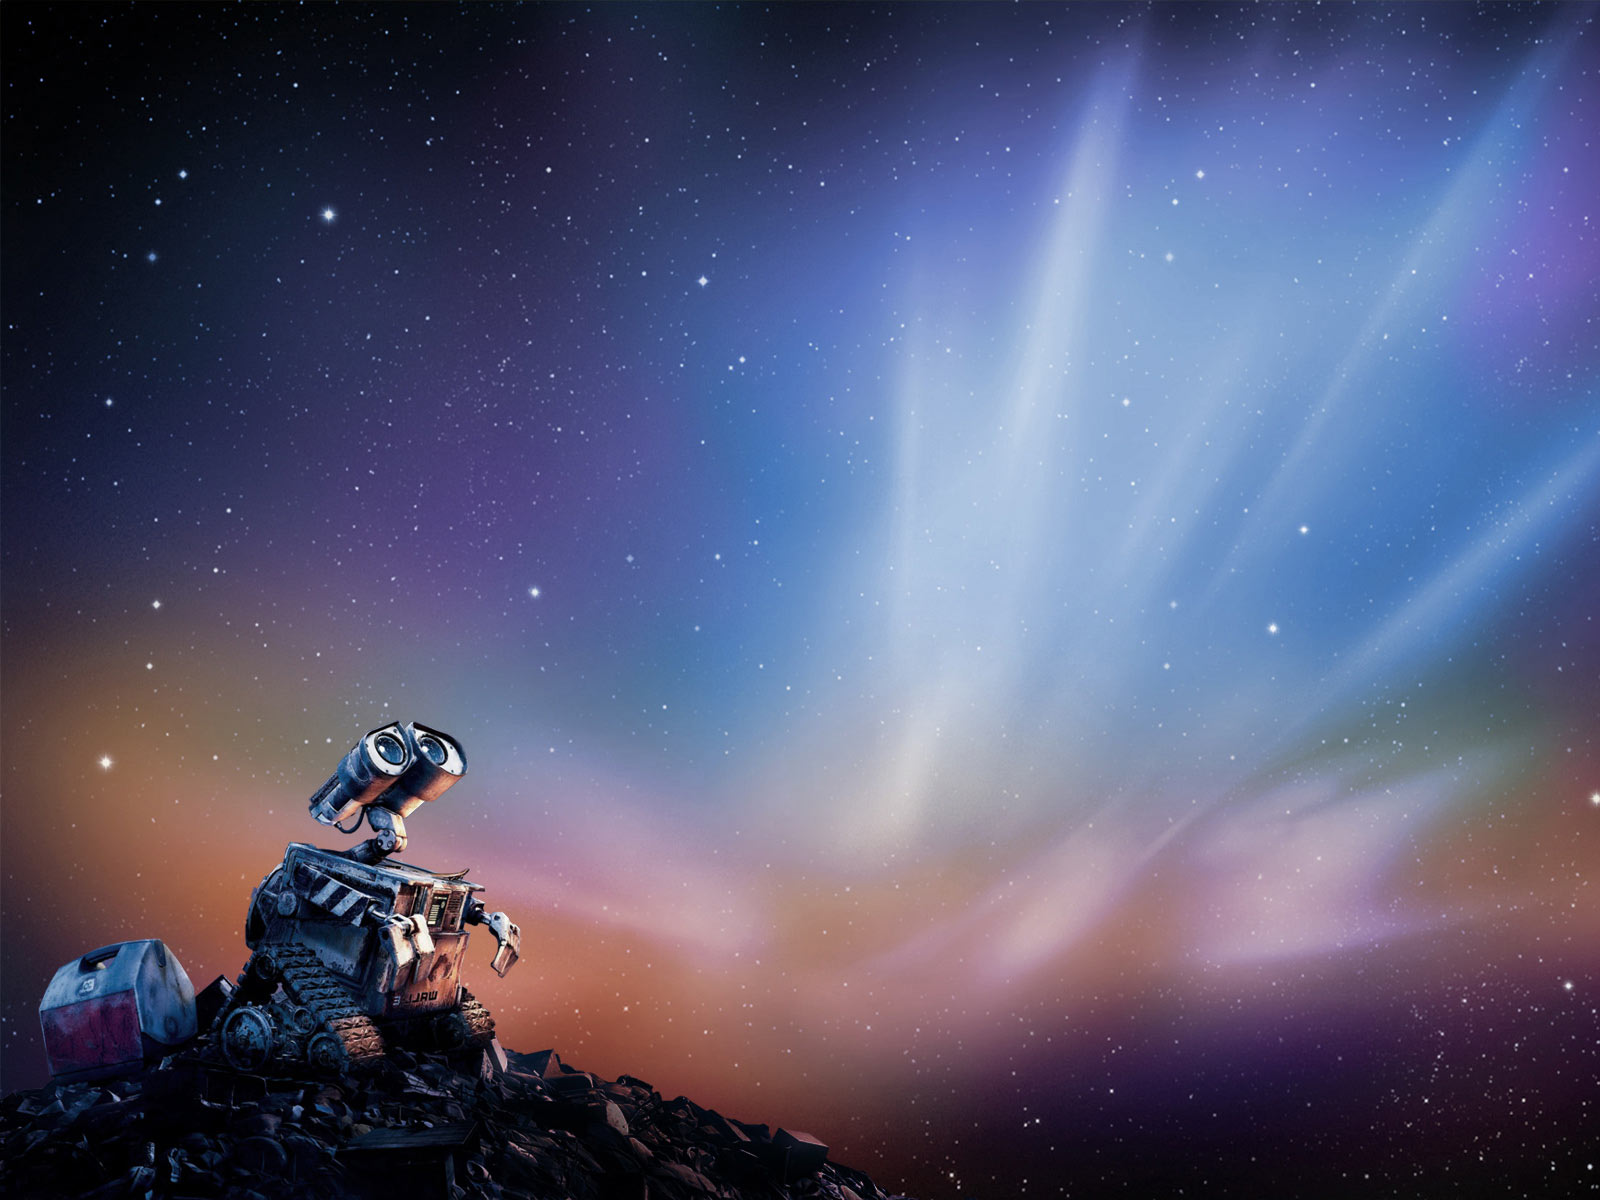 Free wall e wallpaper 30606 1600x1200 px for Wallpapers animados hd